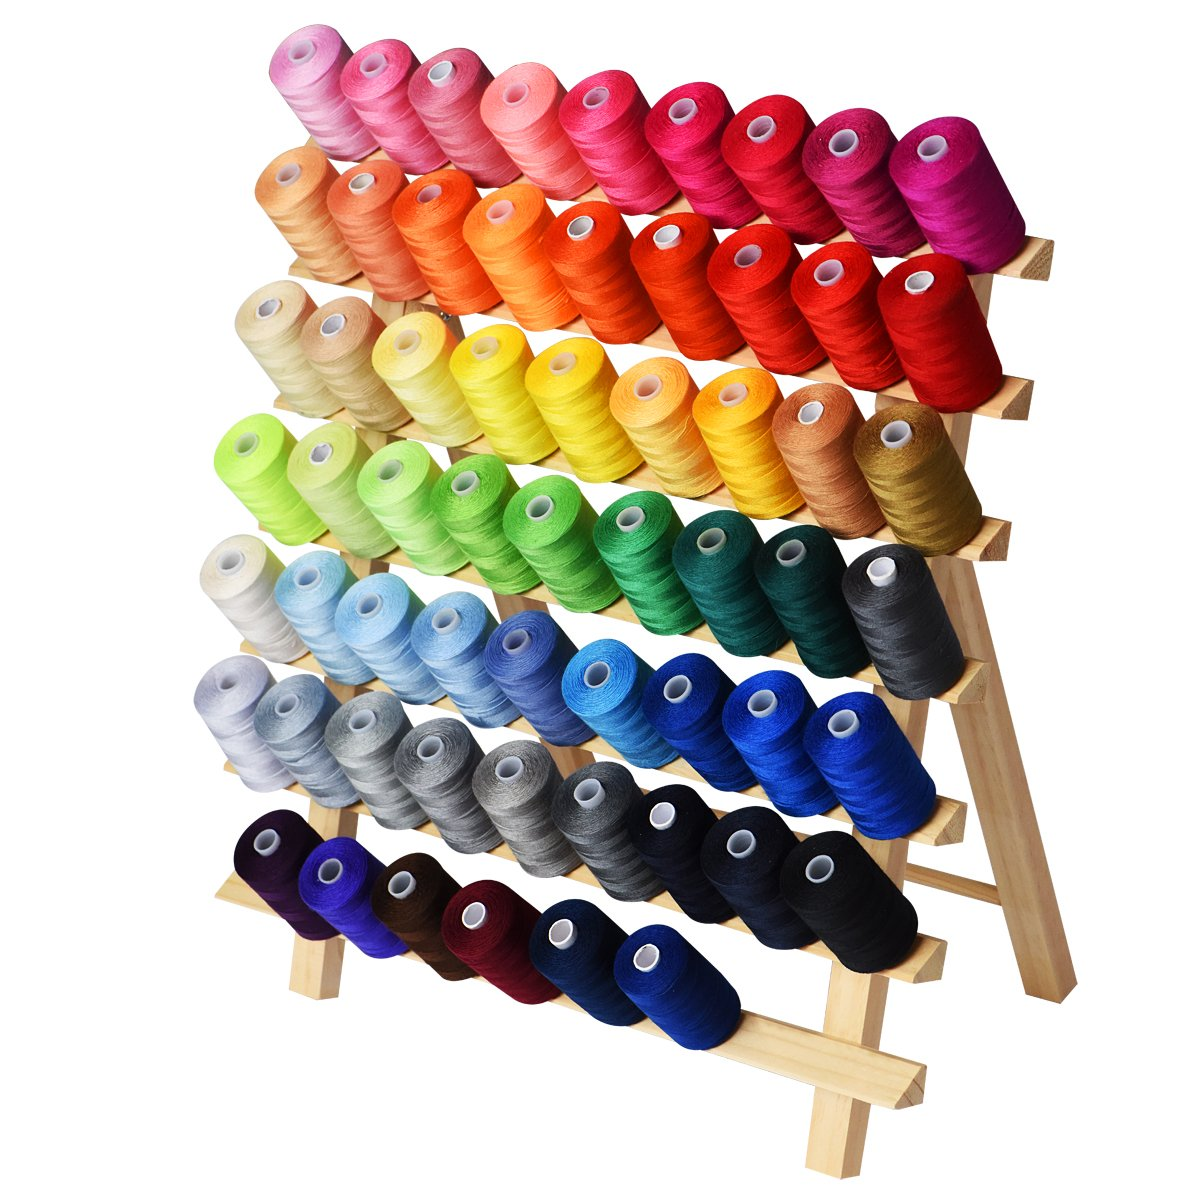 60 Color Polyester Sewing Thread 1000Y per Spool Rainbow Series, ANNE Wuxi Chaoqiang Adornment Co. Ltd. C60-1000